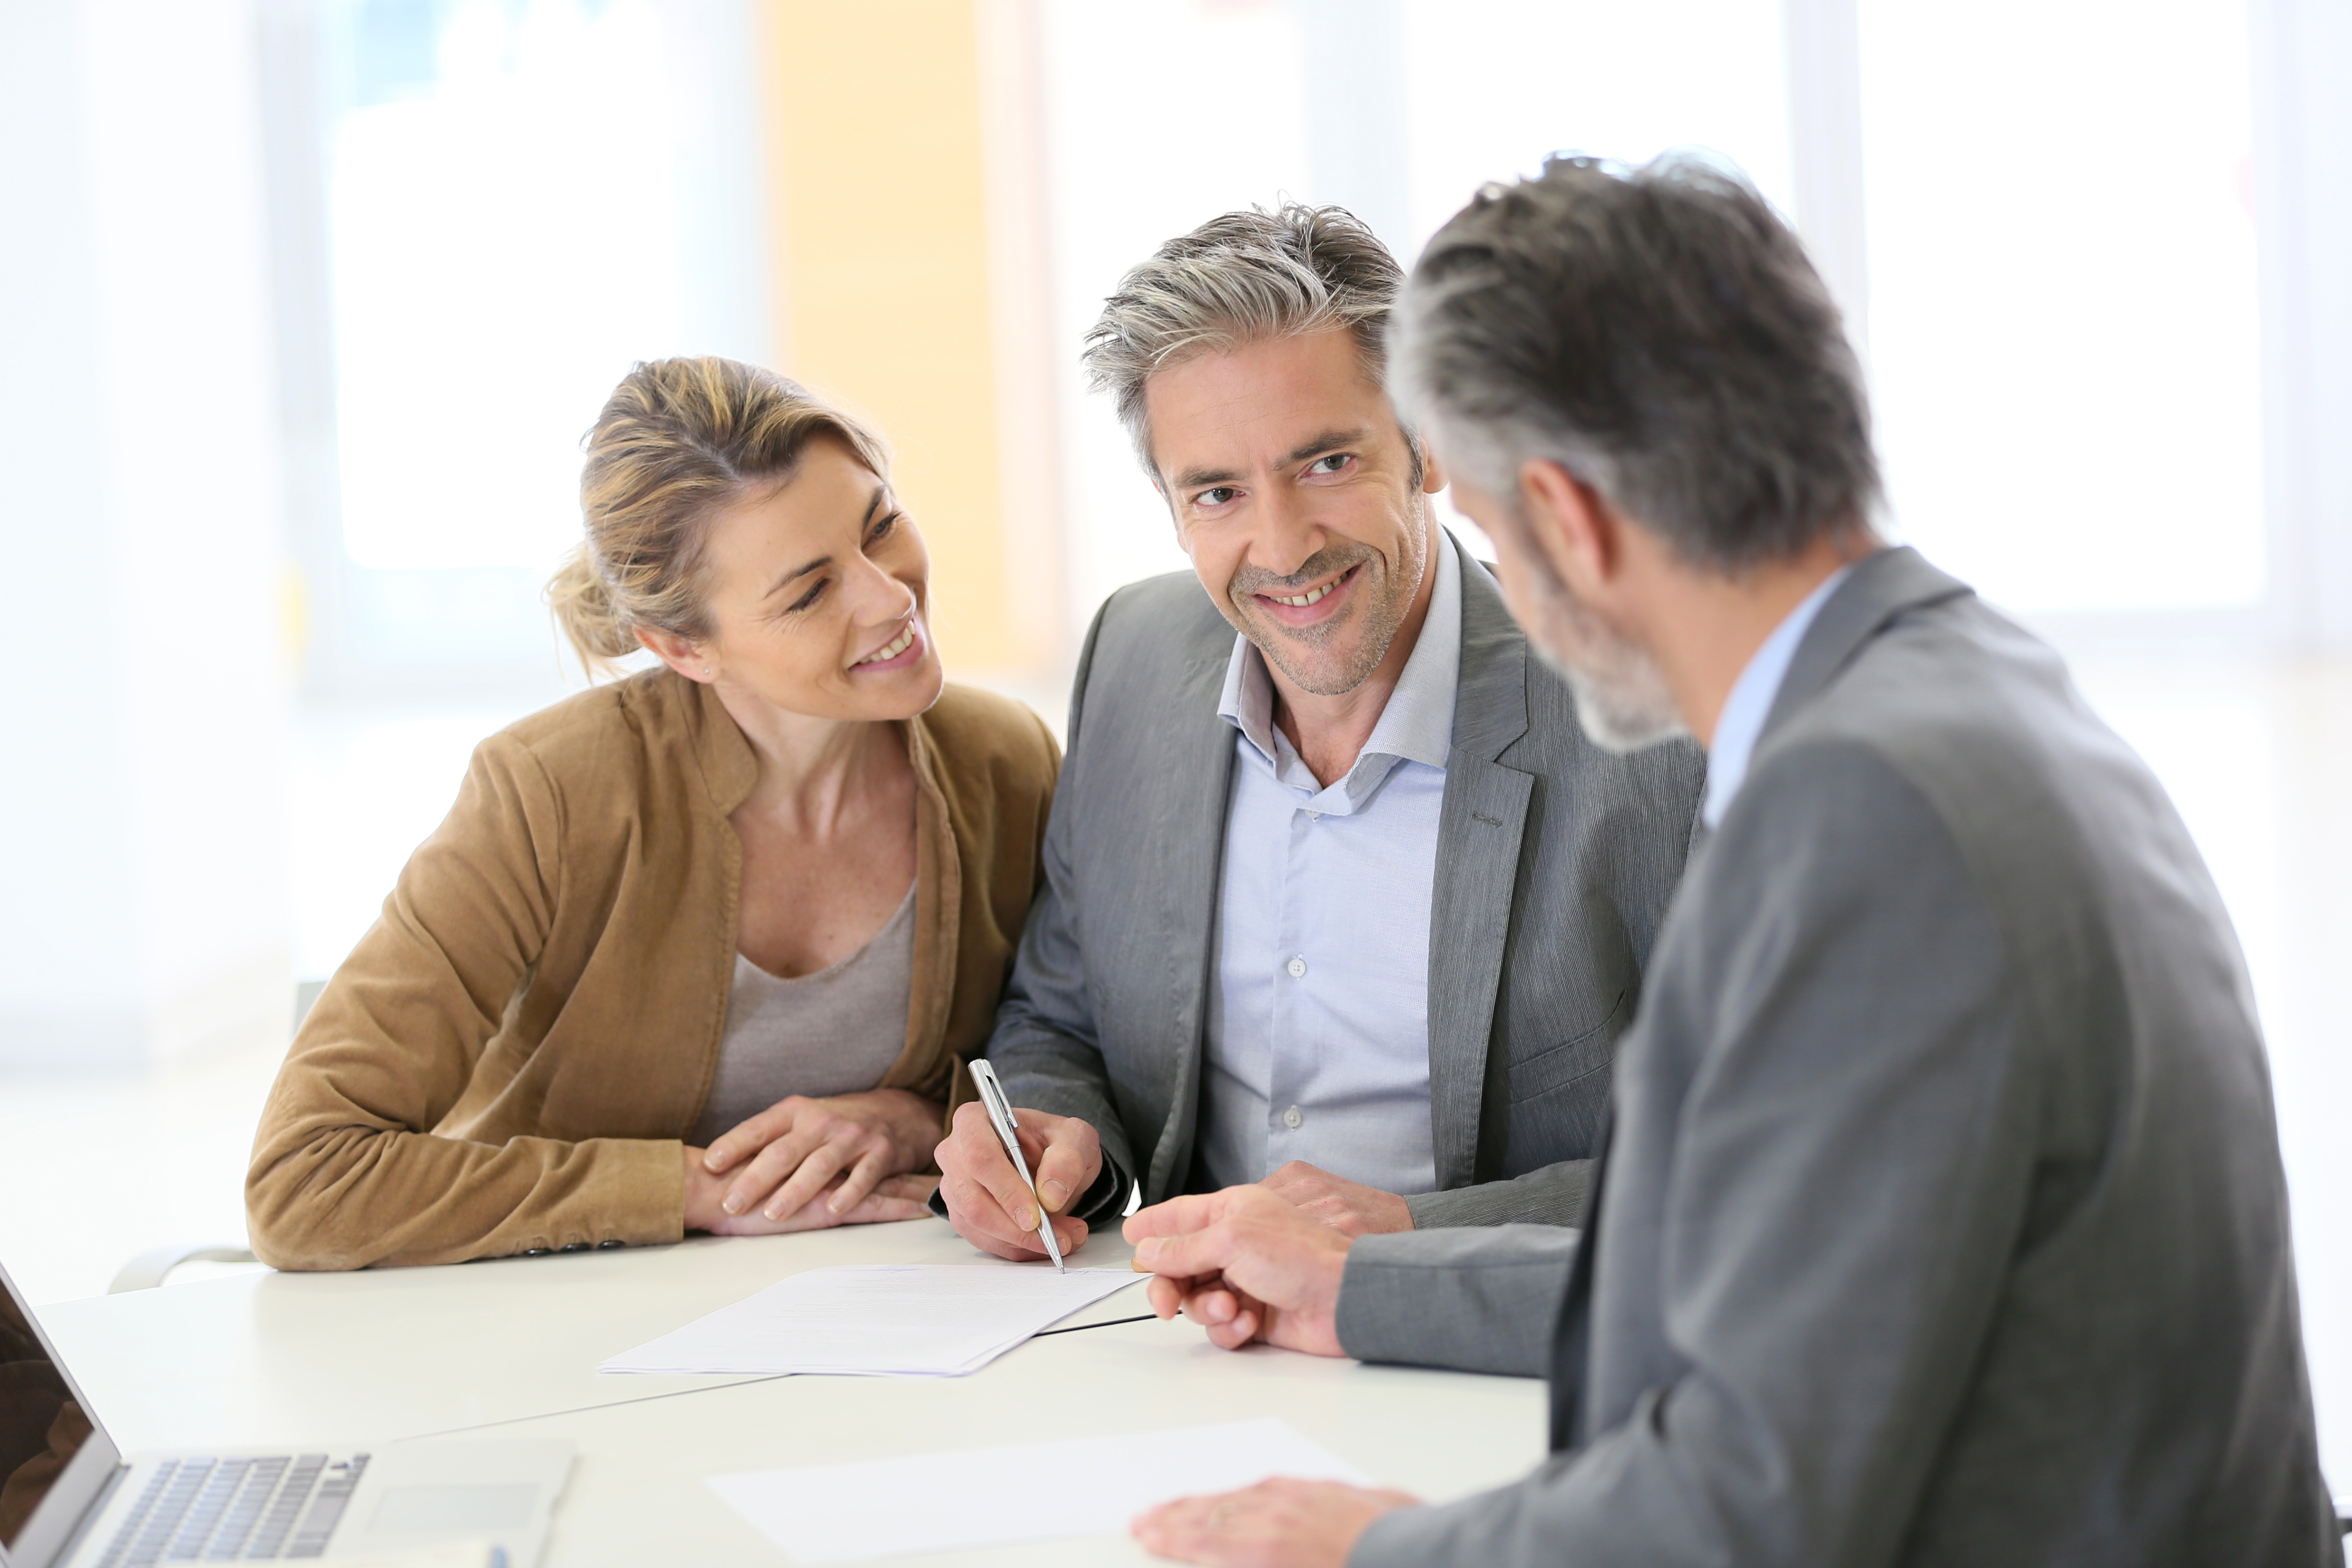 Financial Advisor helping clients in a planning meeting